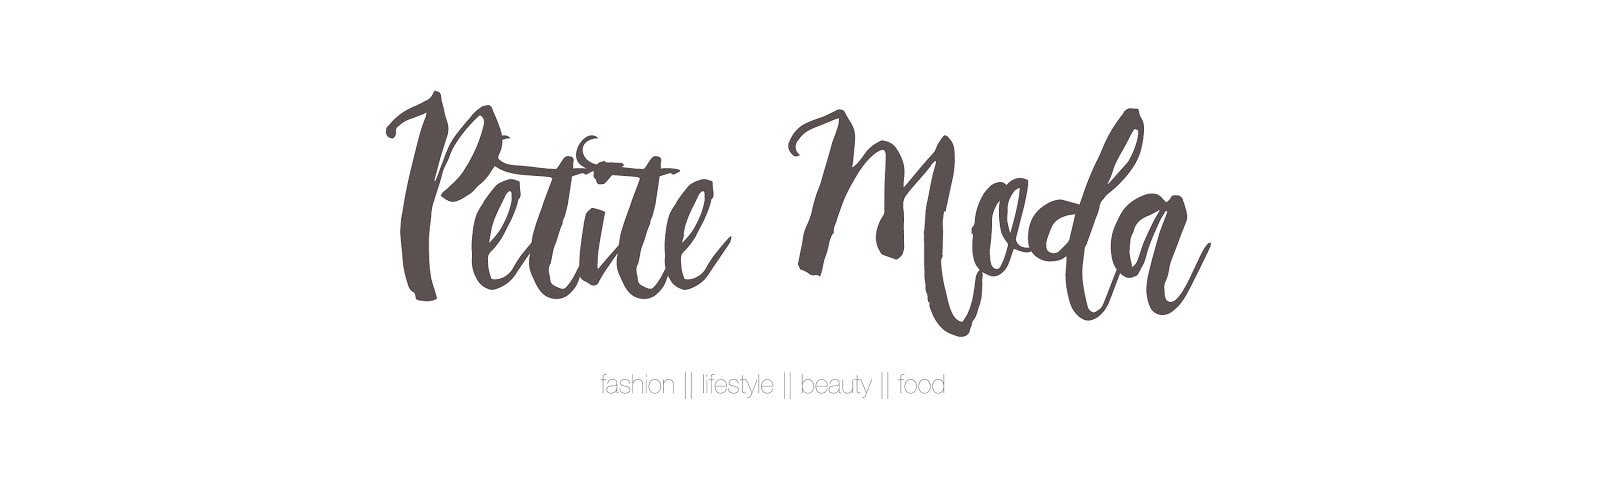 Petite Moda Fashion Beauty Lifestyle Blog